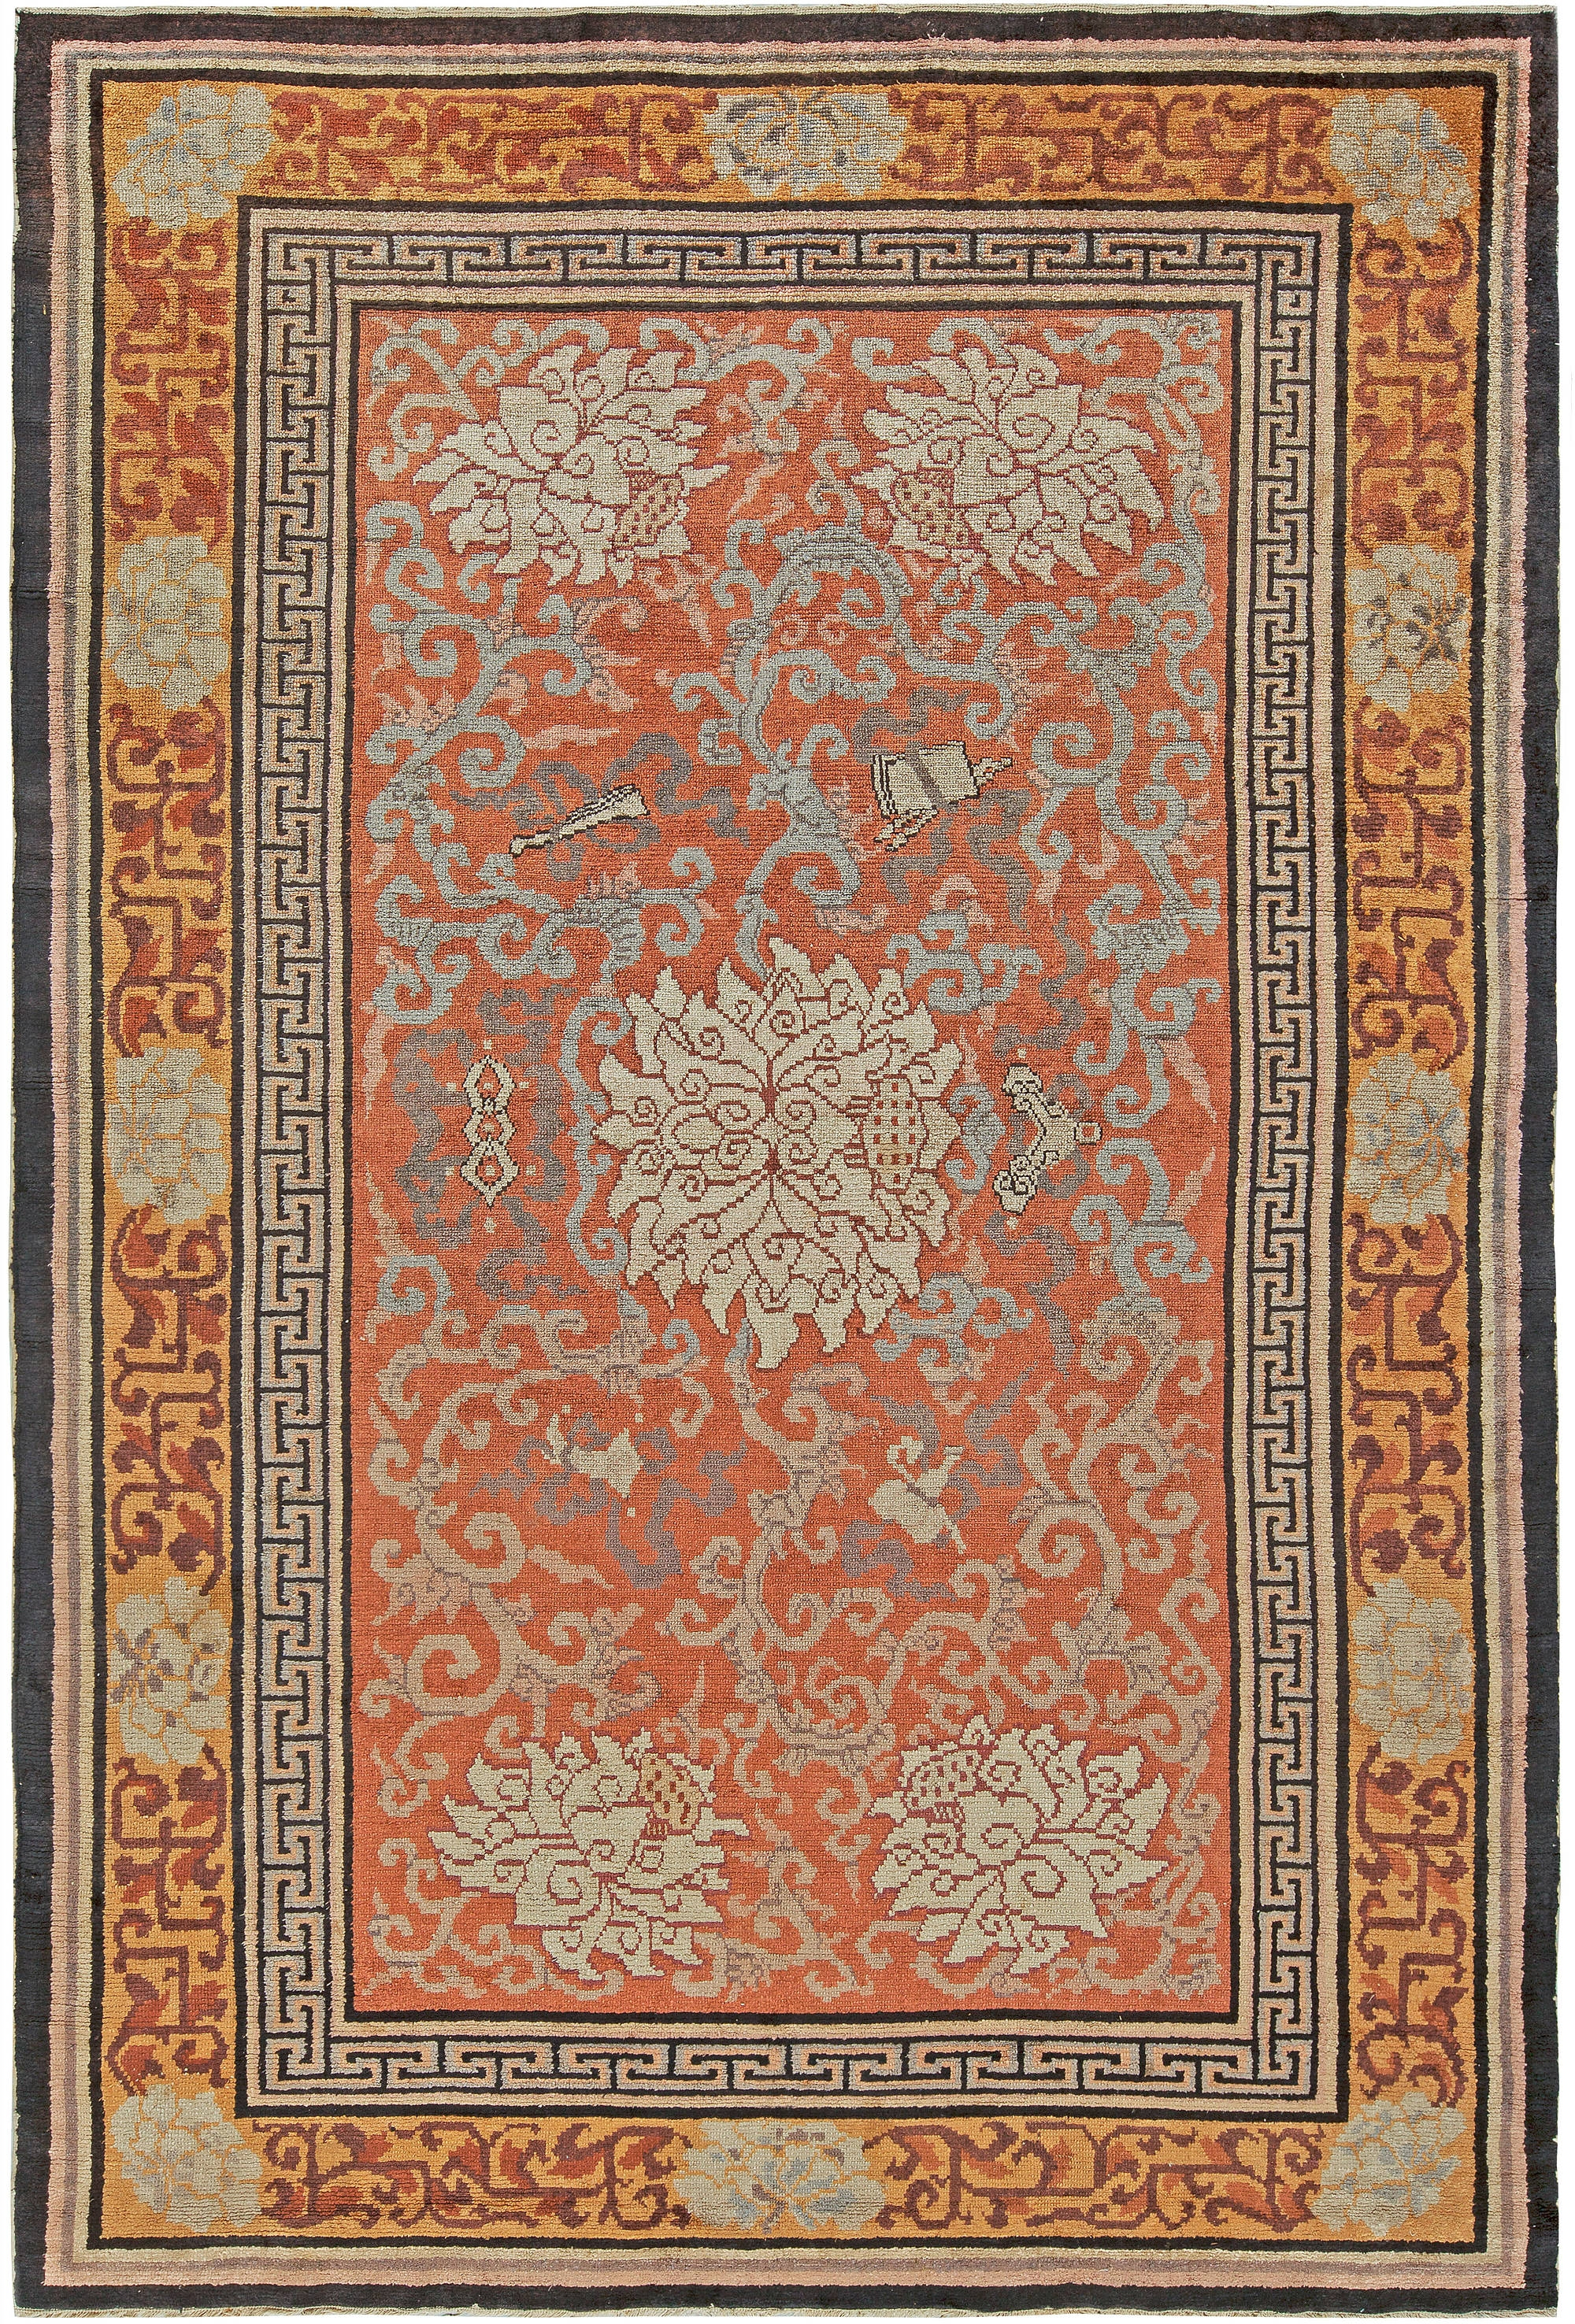 Chinese Rugs From Rug Collection Doris Leslie Blau Pertaining To Chinese Rugs (Image 11 of 15)